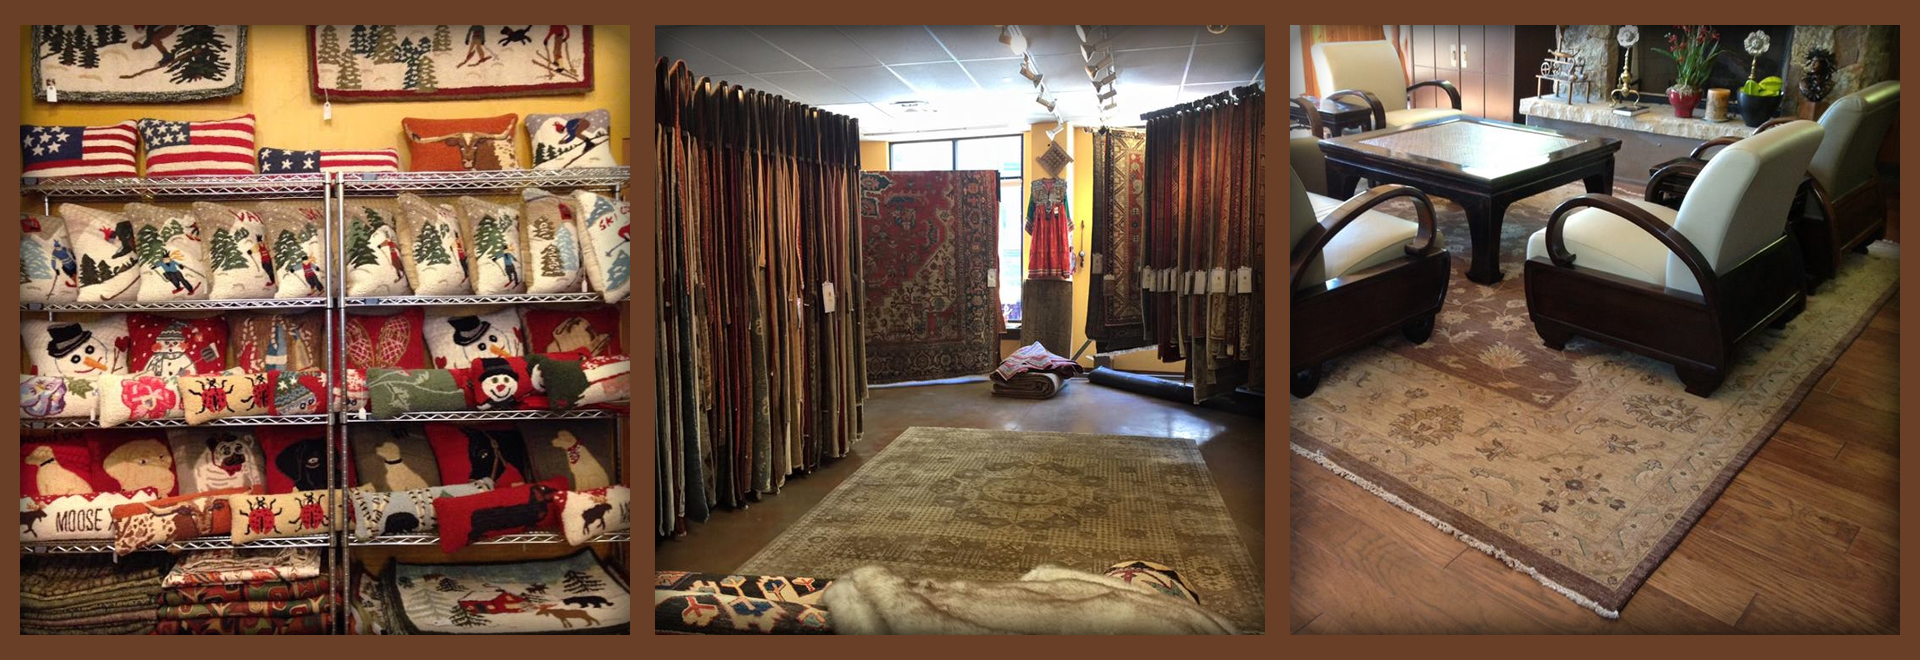 Large selection of Rugs and home accents accents